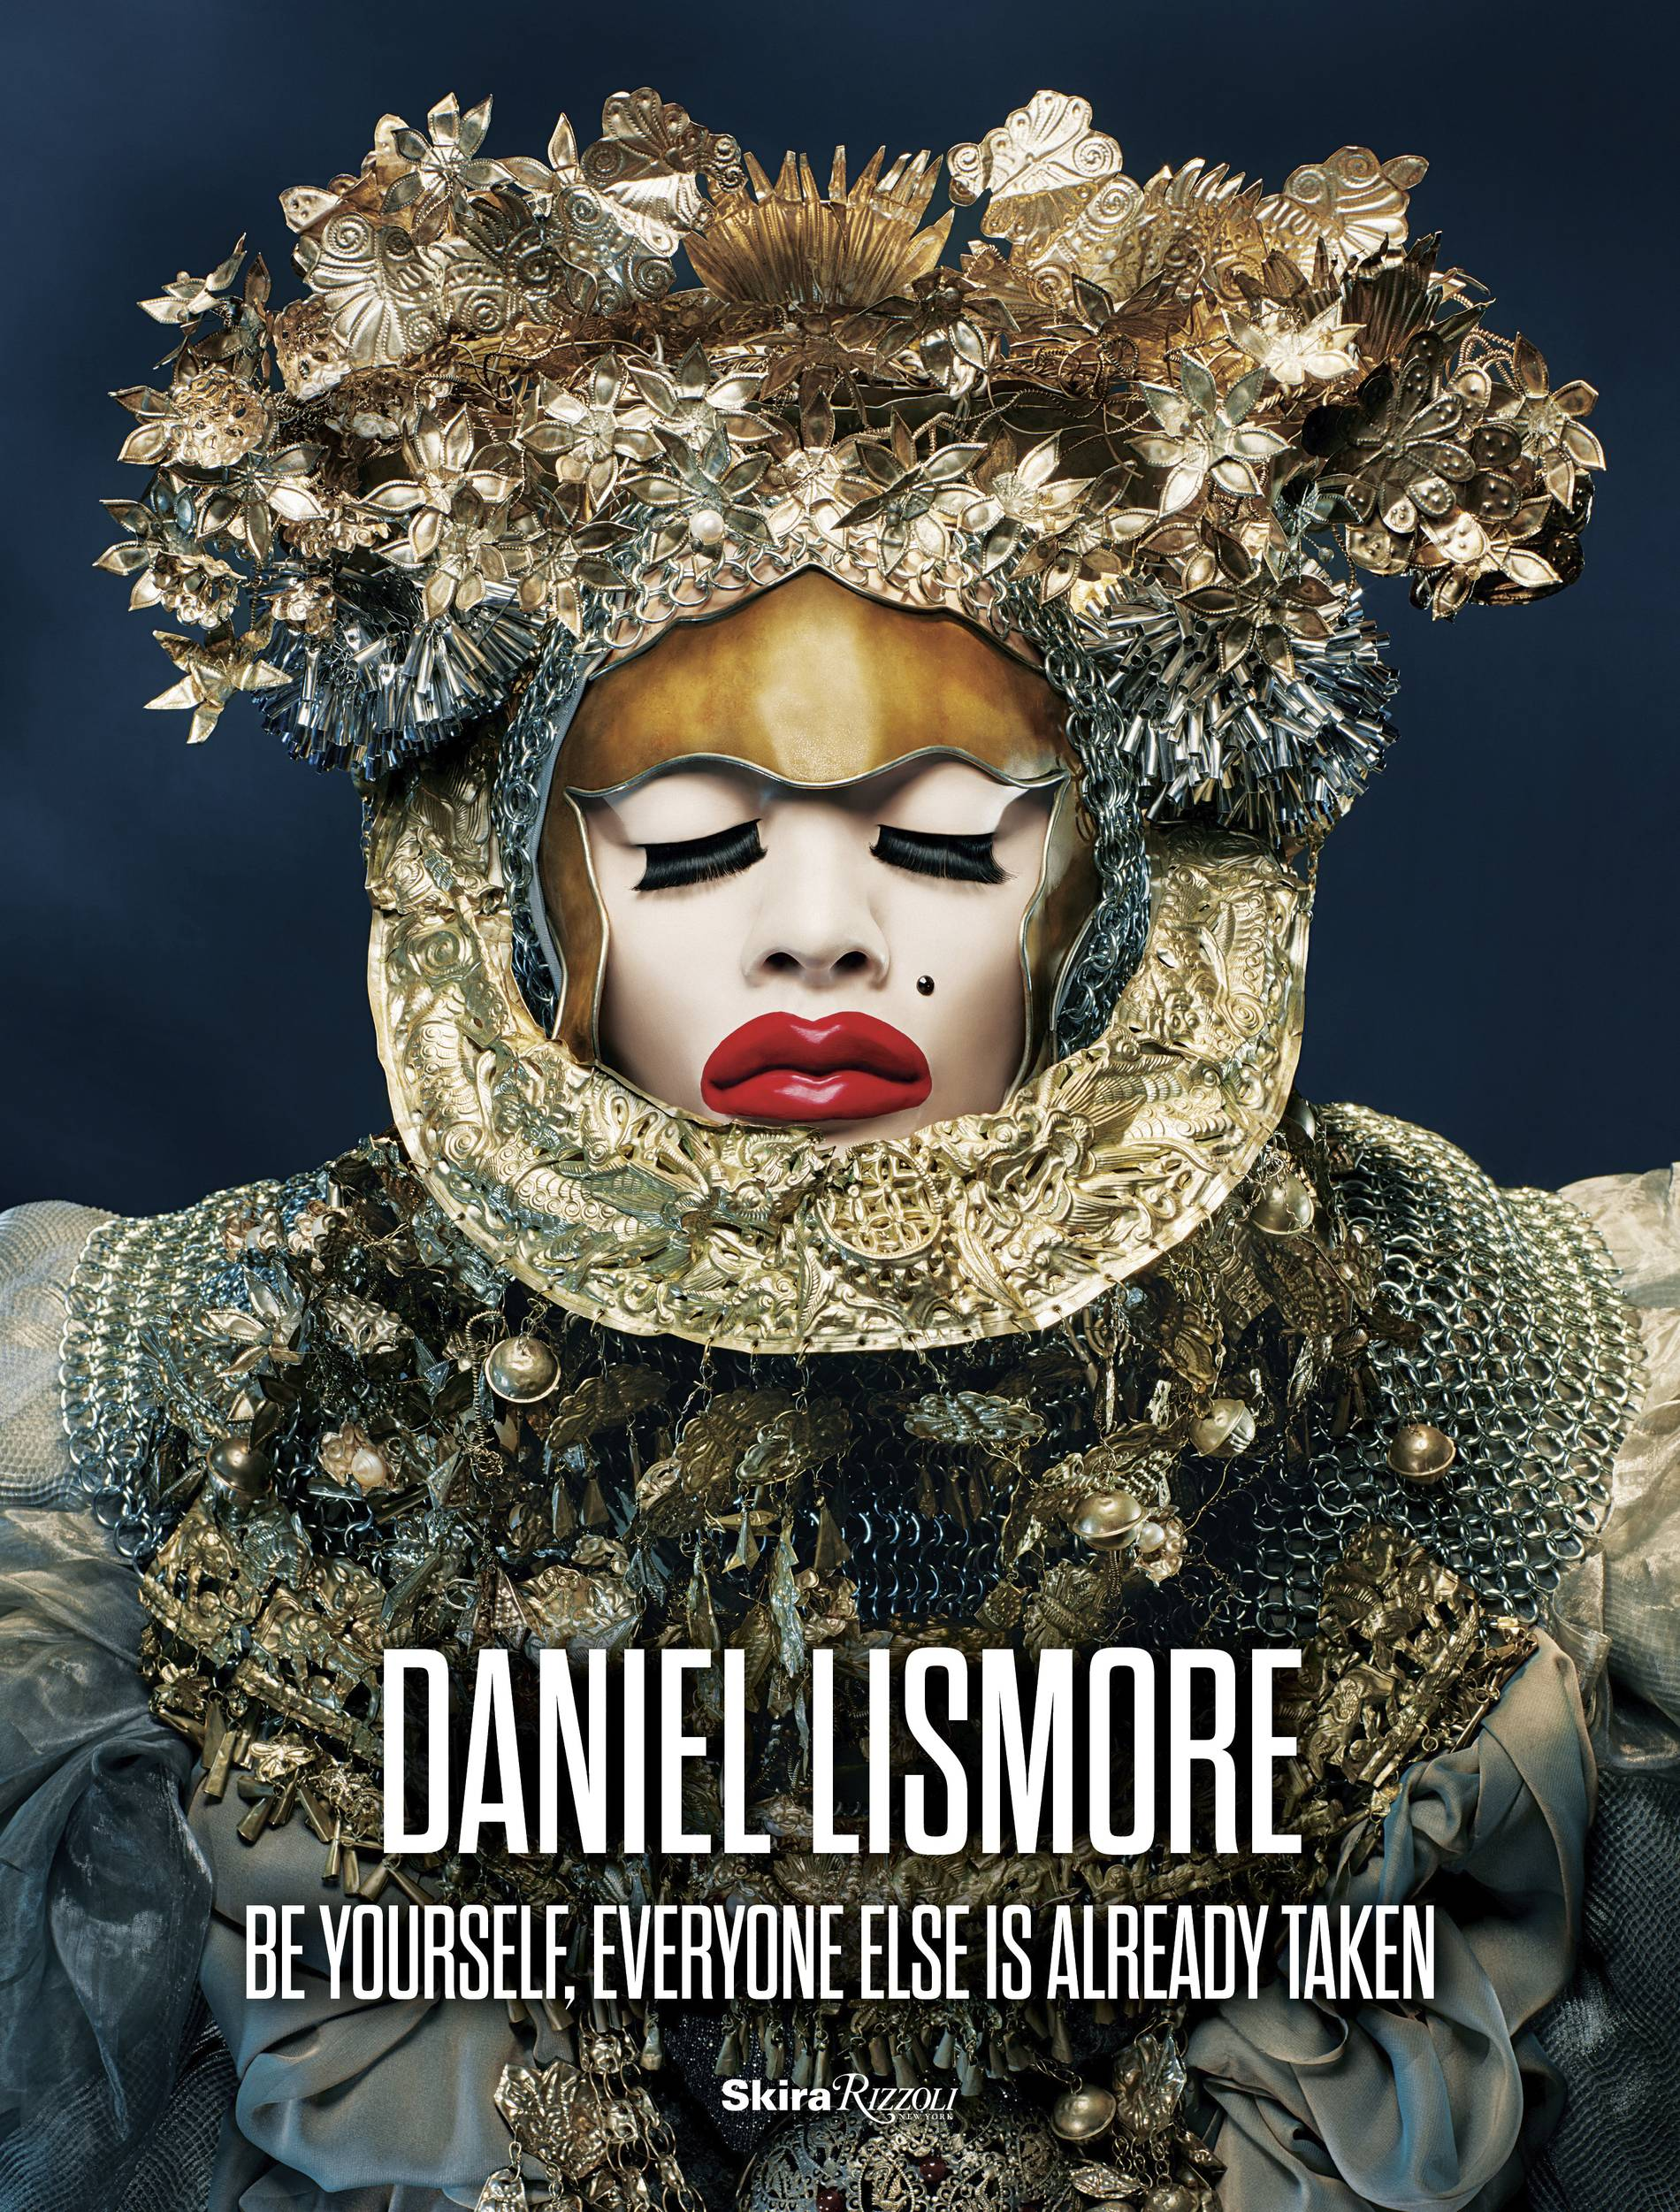 Daniel Lismore book cover